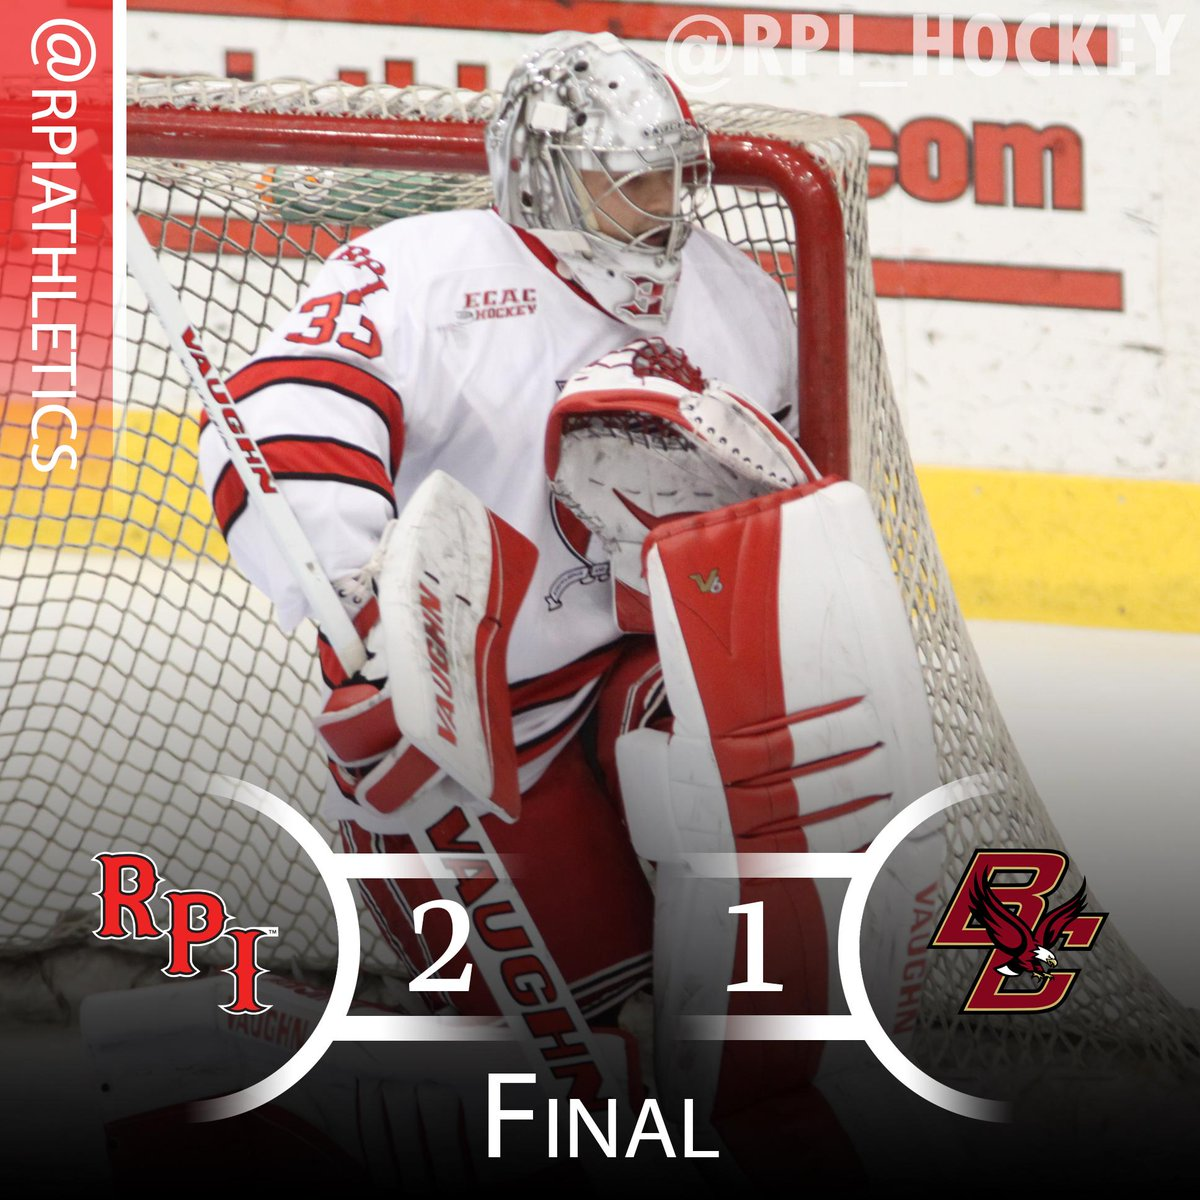 #RPIHockey (1-1) tops No. 1 Boston College, 2-1, behind two goals from Riley Bourbonnais. Kasdorf saves 36. http://t.co/9A4H2N7pb8